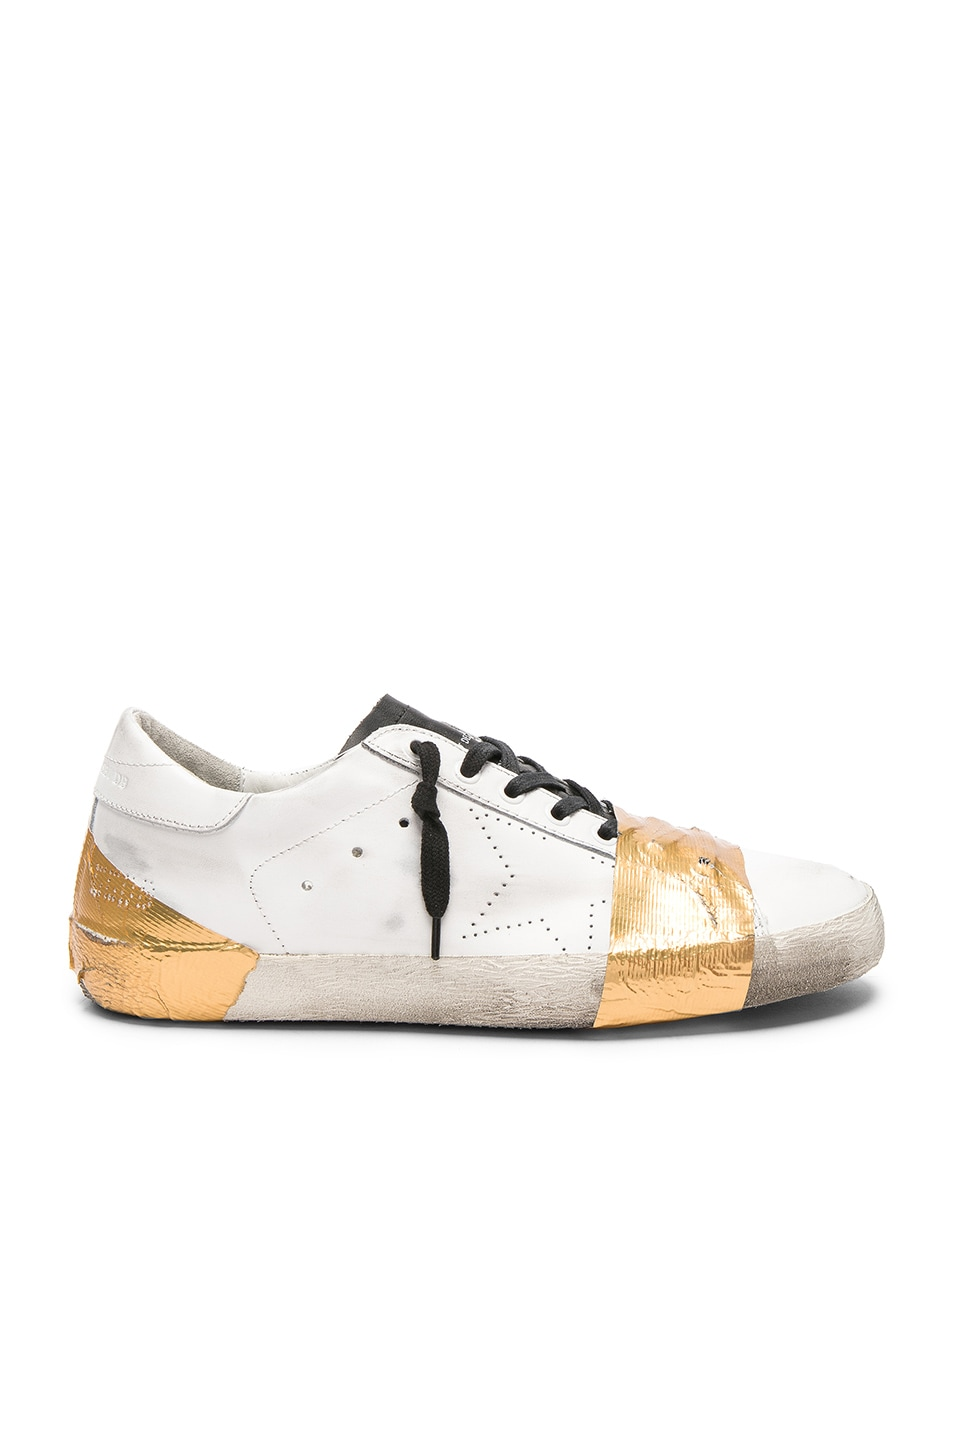 Golden Goose Superstar Sneakers In White In White Leather